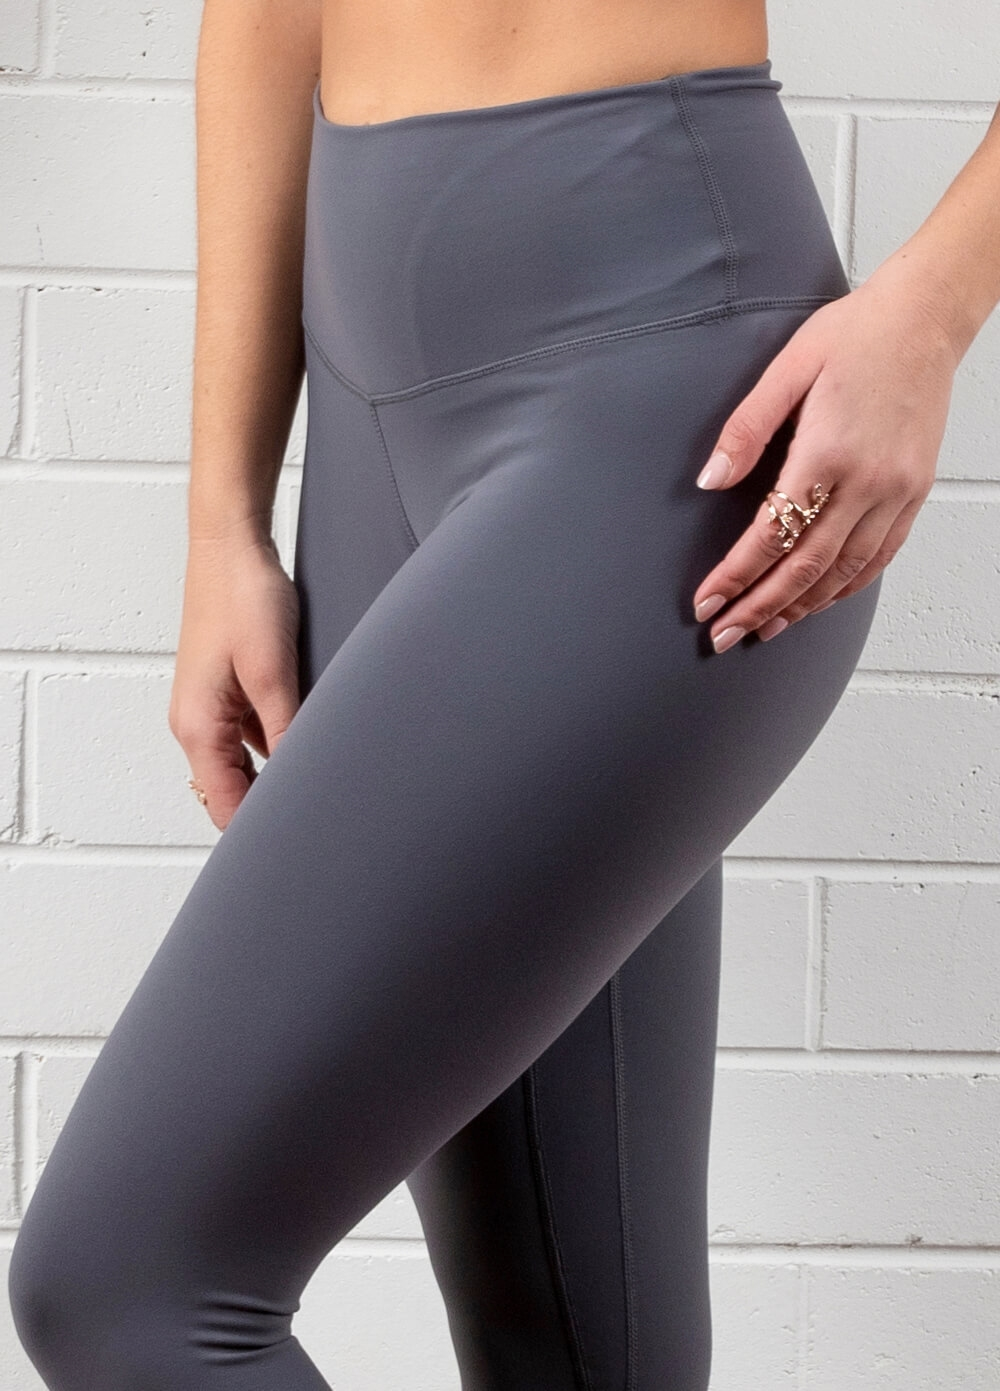 Queen Bee - Ivy Everyday Post Maternity Legging in Pewter